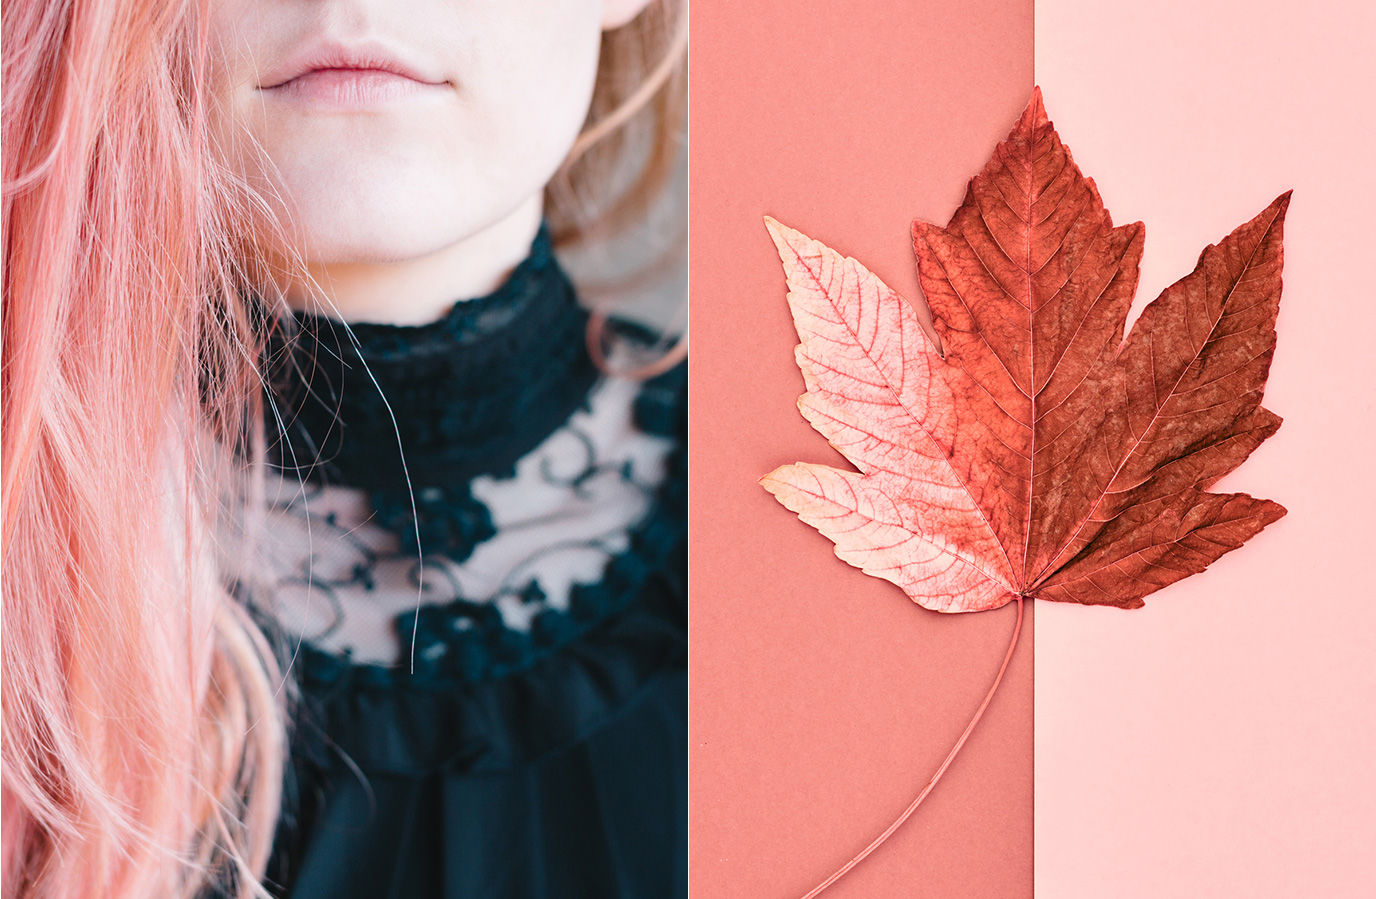 2019's Visual Trends (according to stock libraries